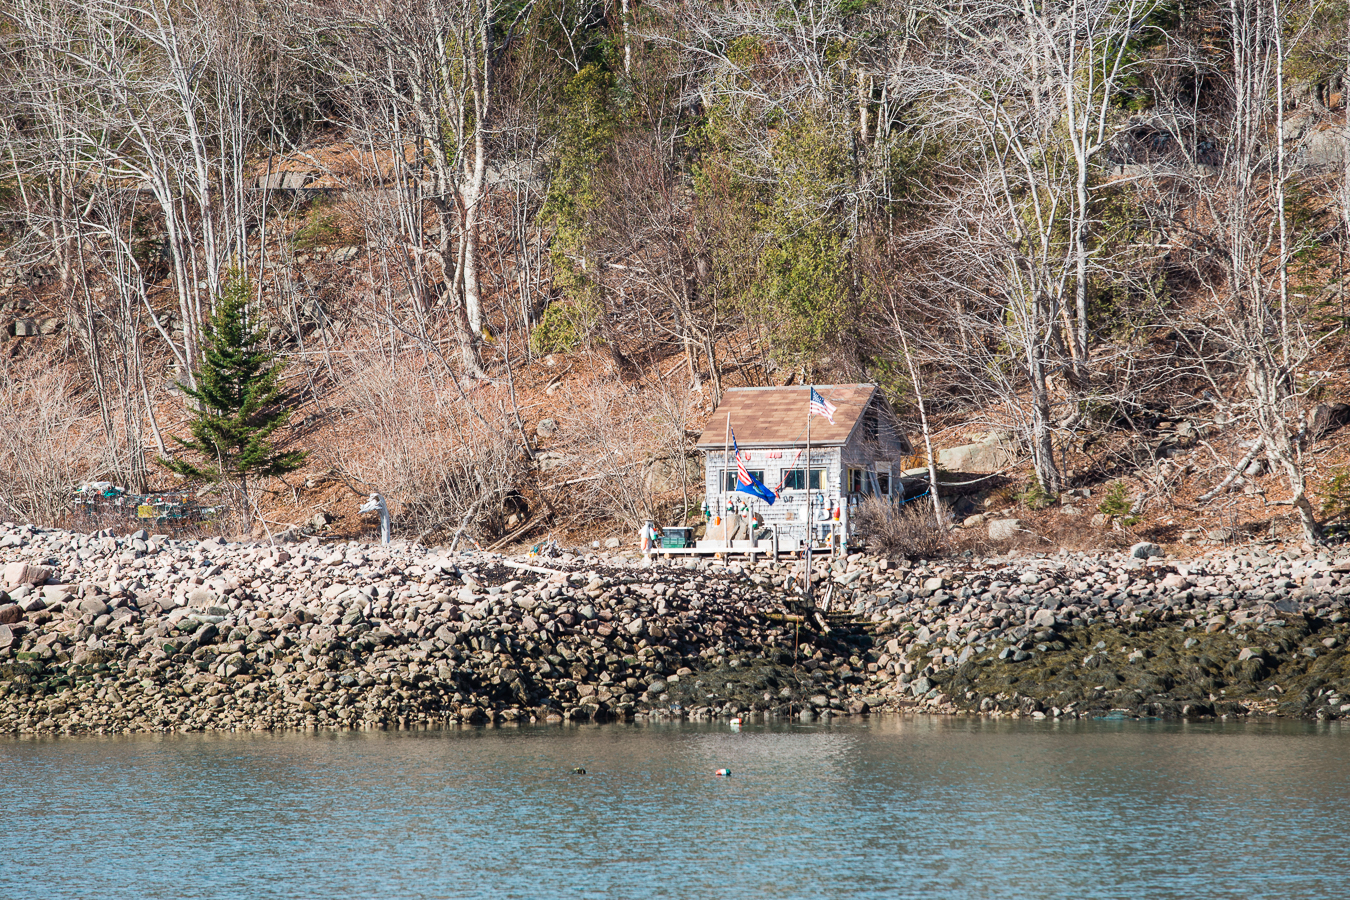 Someday I'll have a fishin' hut like this,where we'll drink whiskey and tell long winded stories.